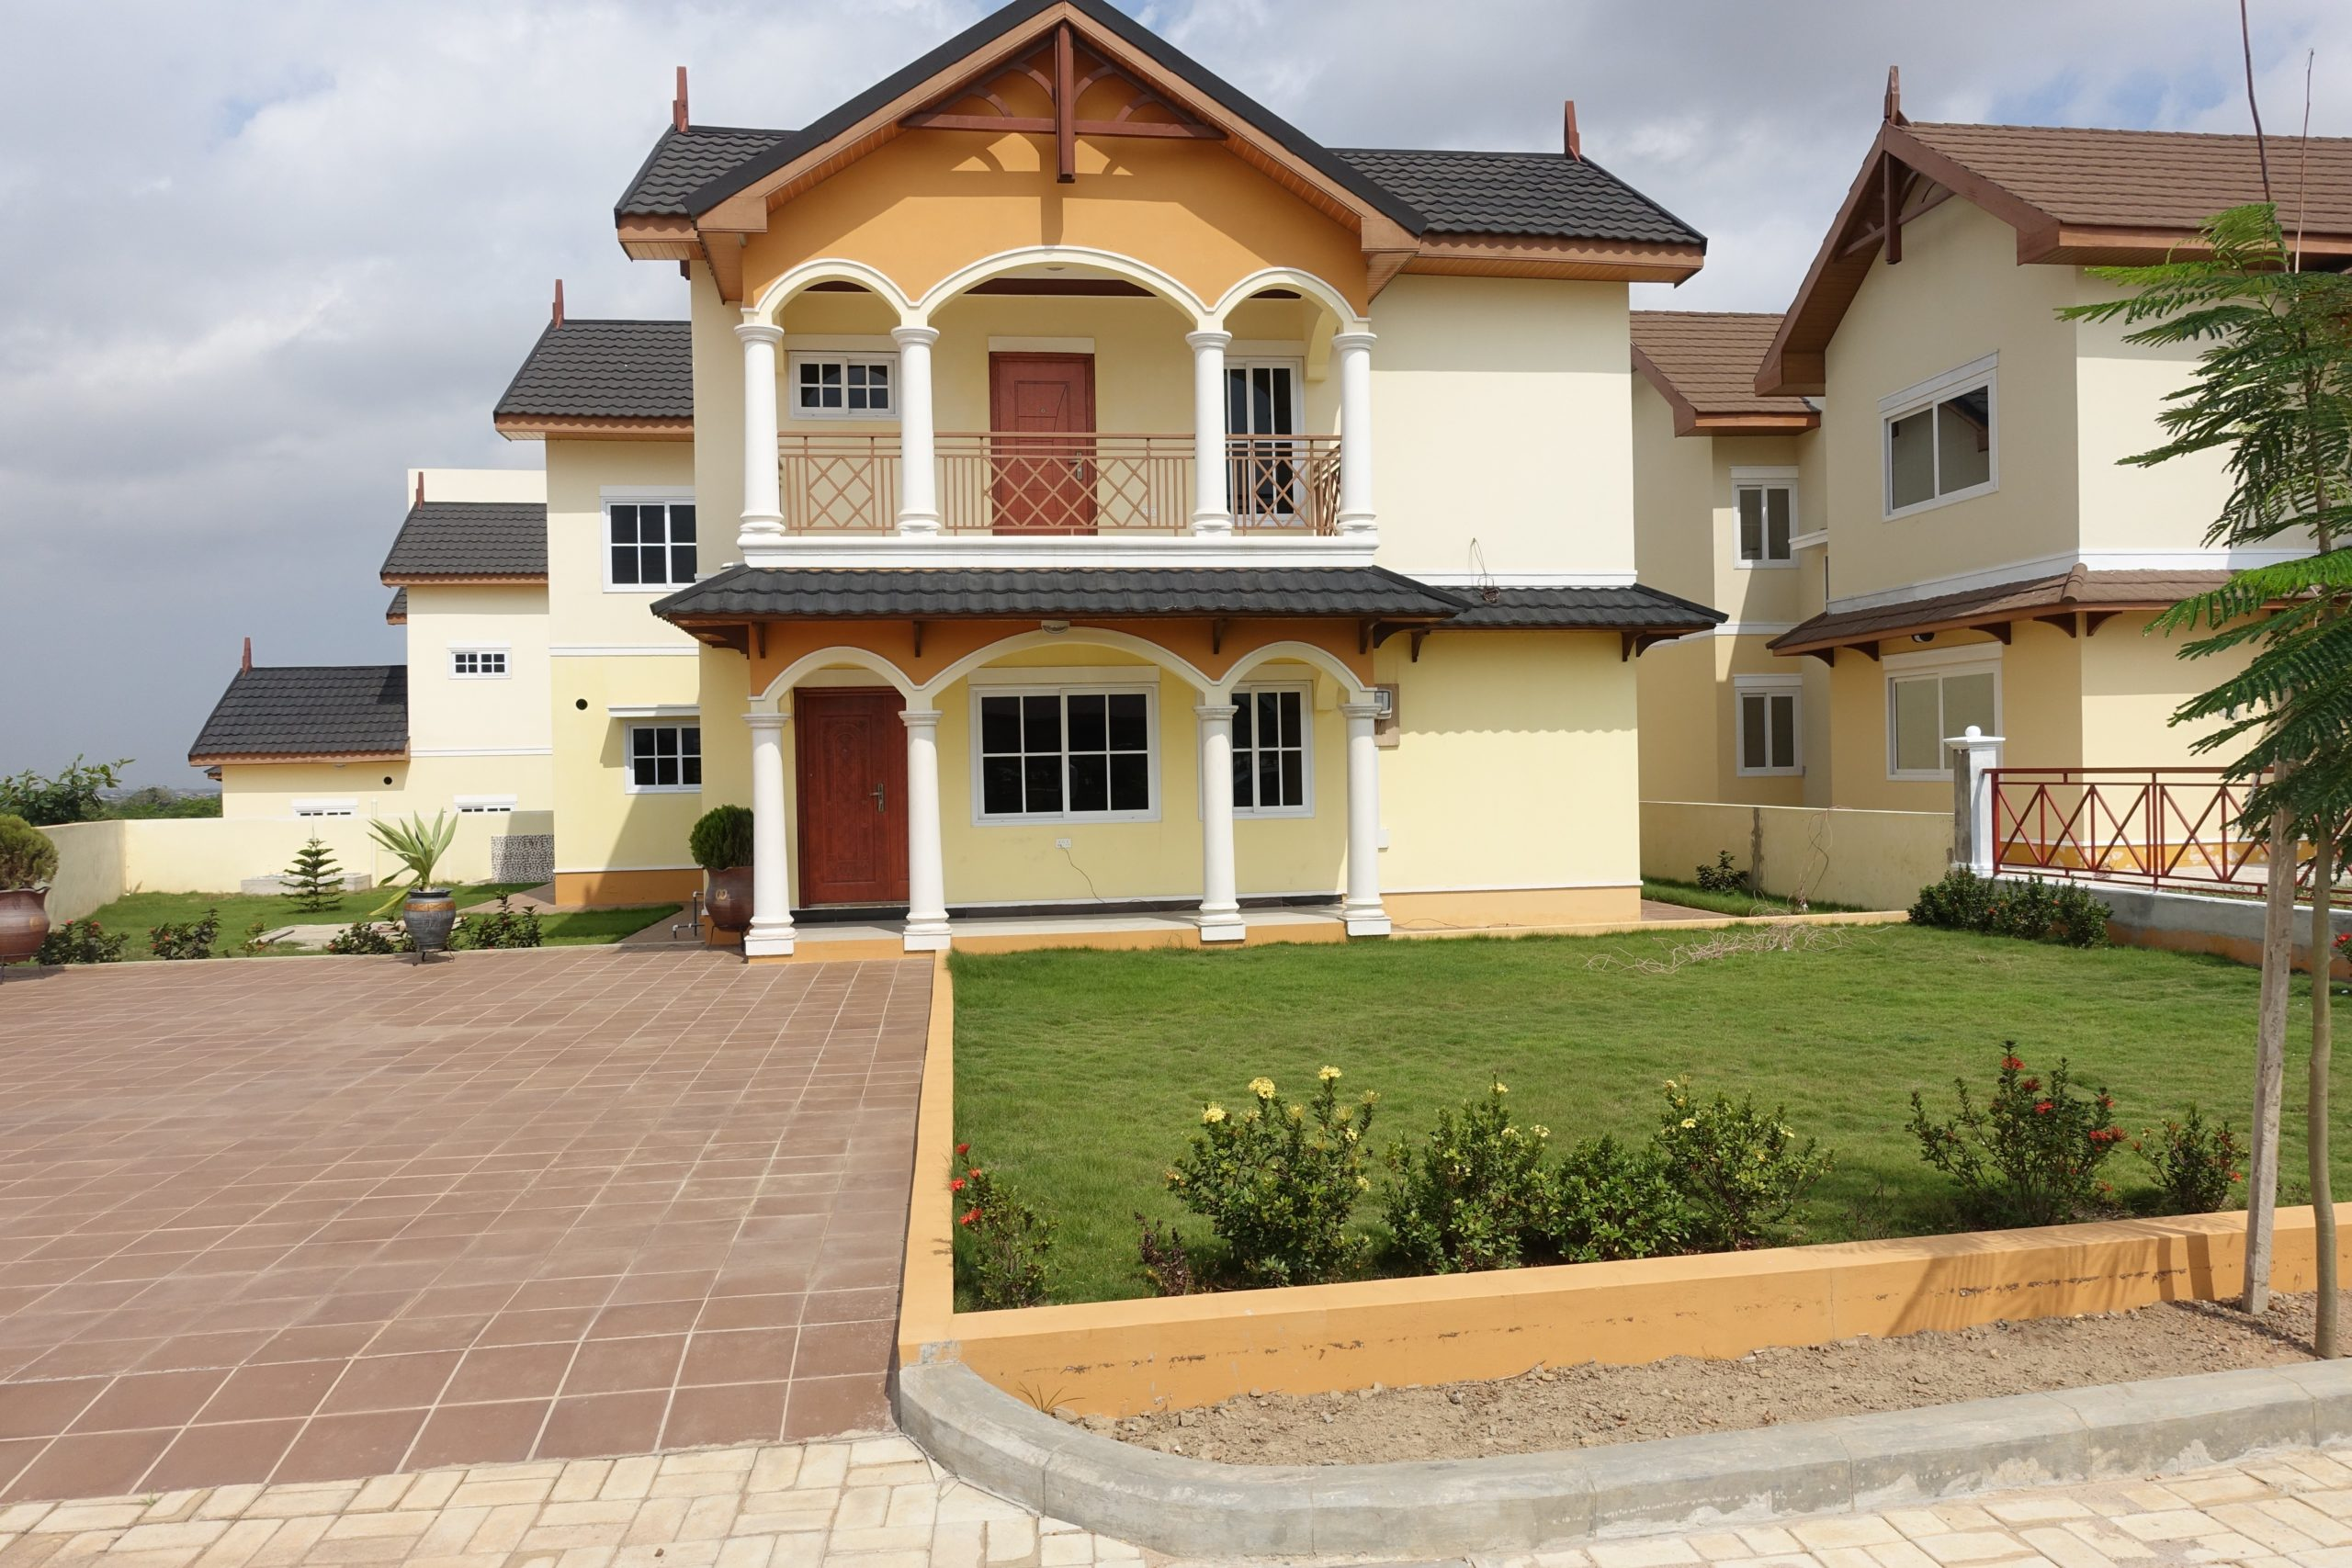 4 BEDROOM LUXURY HOUSE FOR RENT AT EAST LEGON HILLS